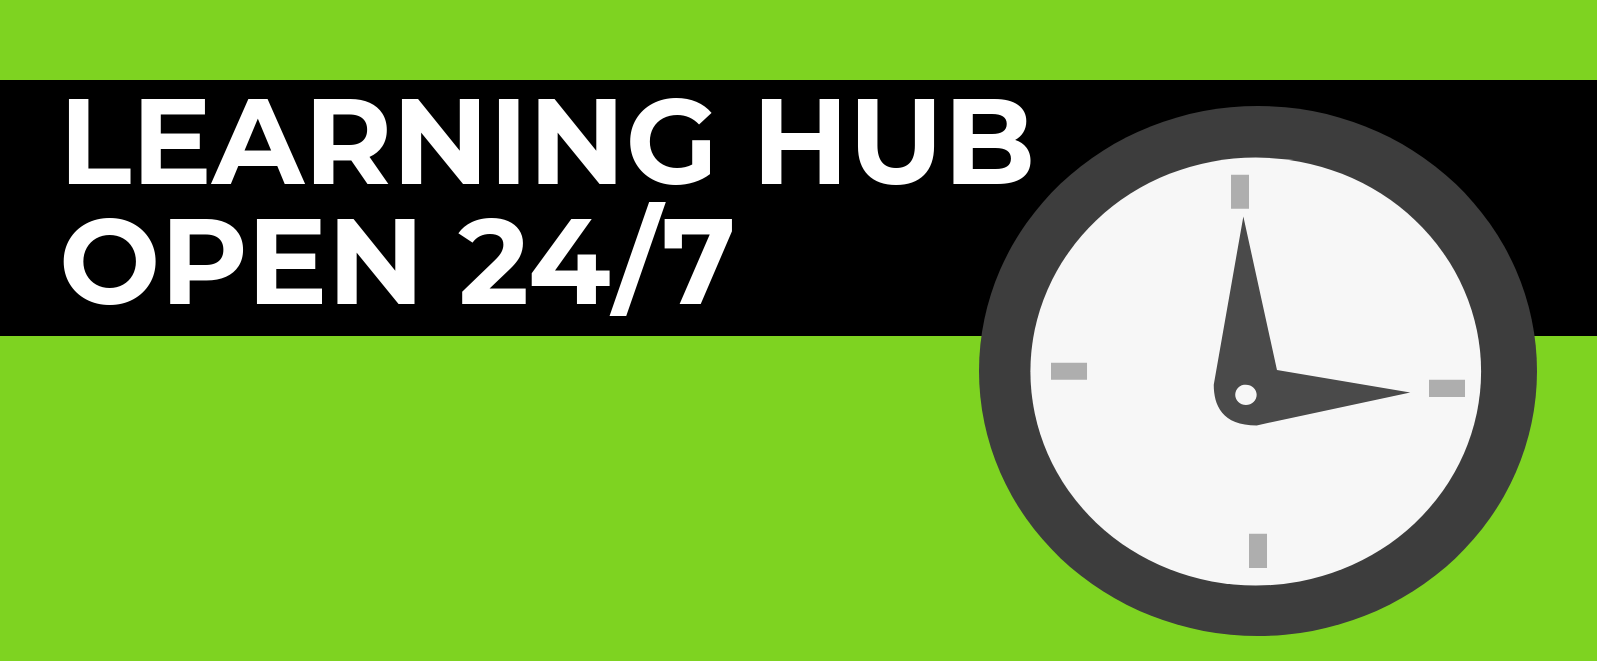 Southend Learning Hub is open 24 hours 7 days a week - click for more details